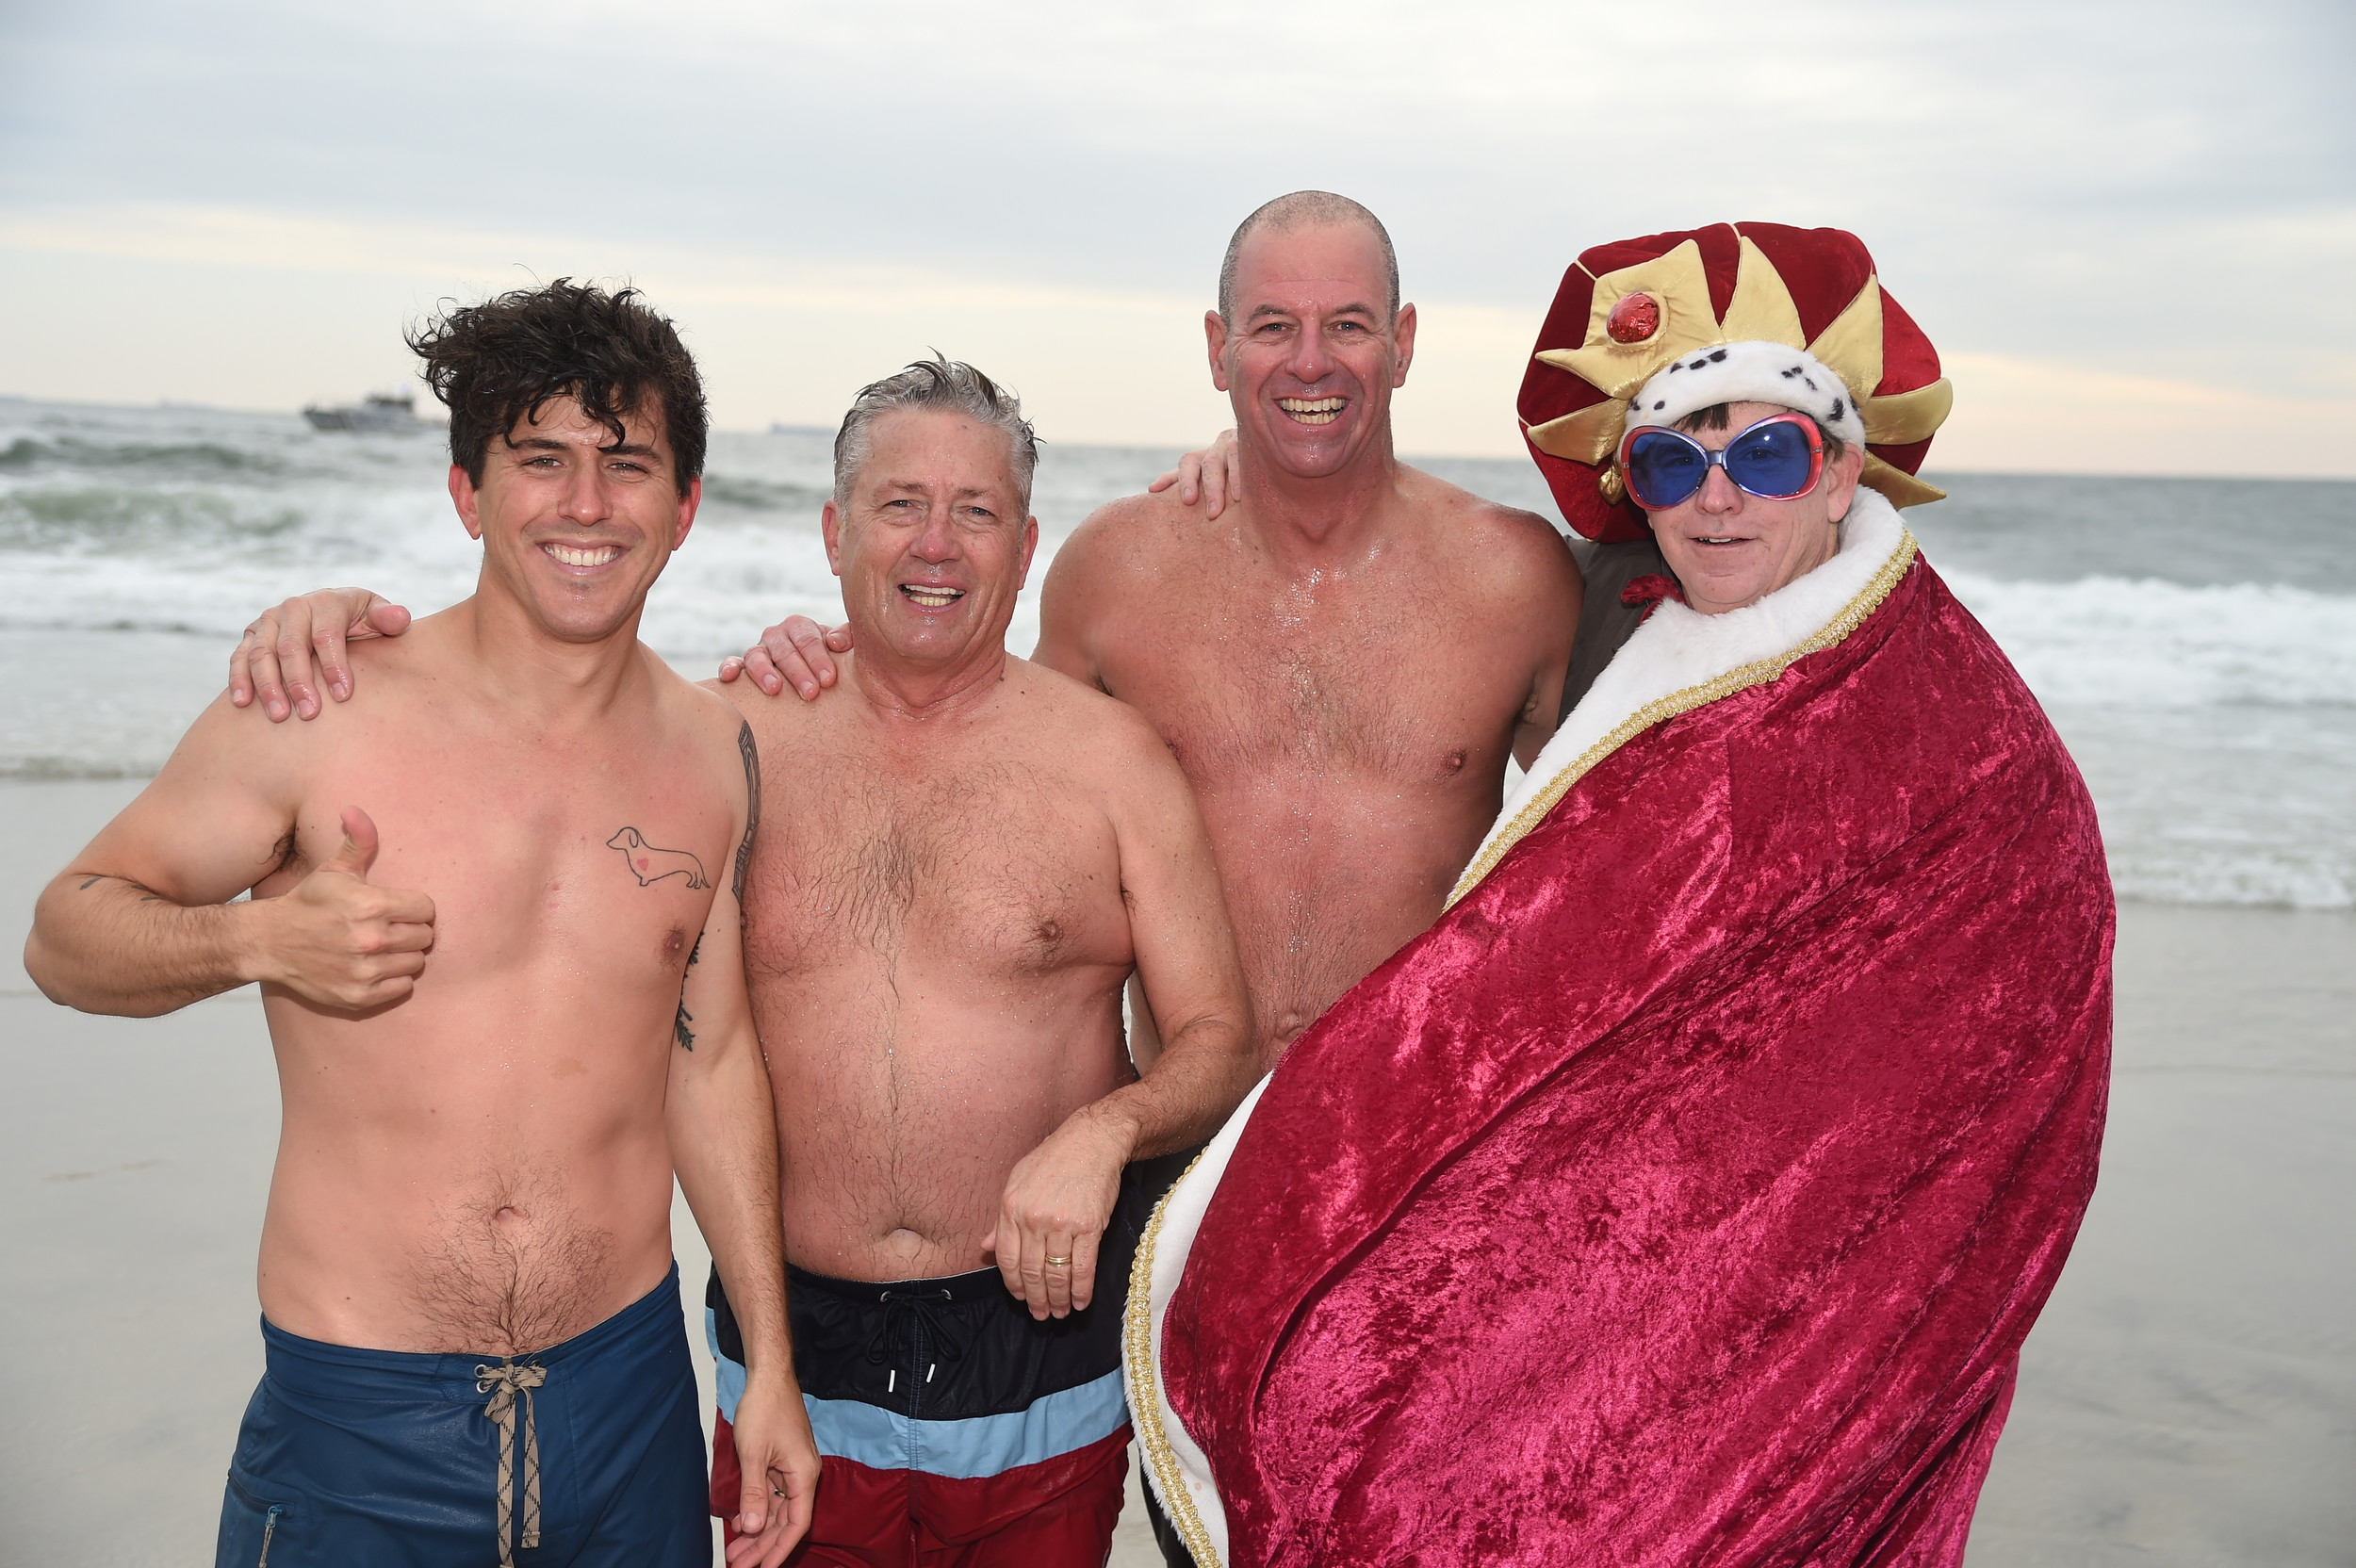 Matt Gordon, of Long Beach, far left, with the co-founders of the Polar Bear Splash Kevin McCarthy and Pete Meyers, and the creatively costumed Pat Gordon.